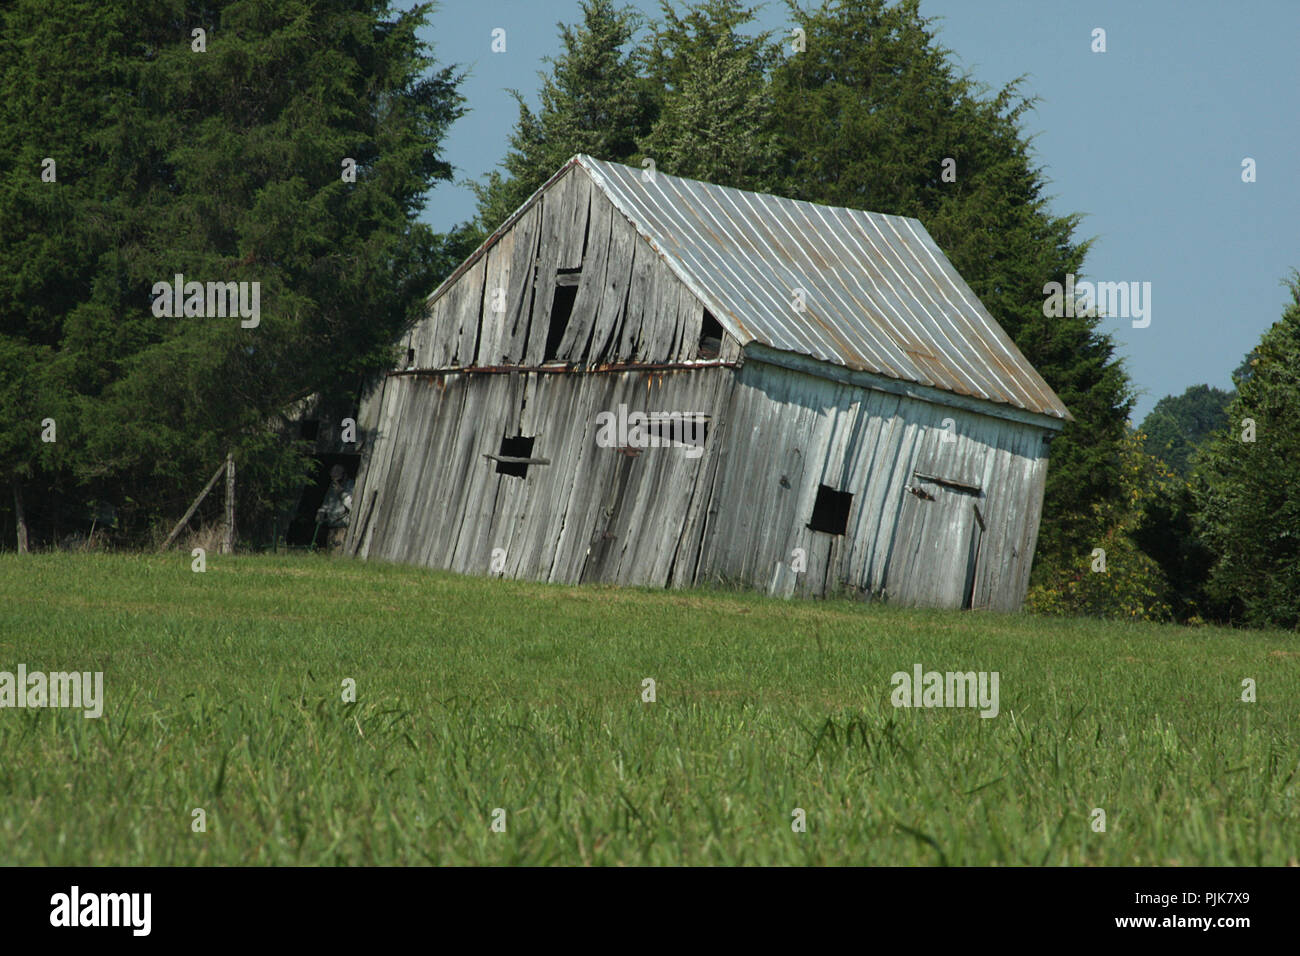 Wooden shed collapsing - Stock Image